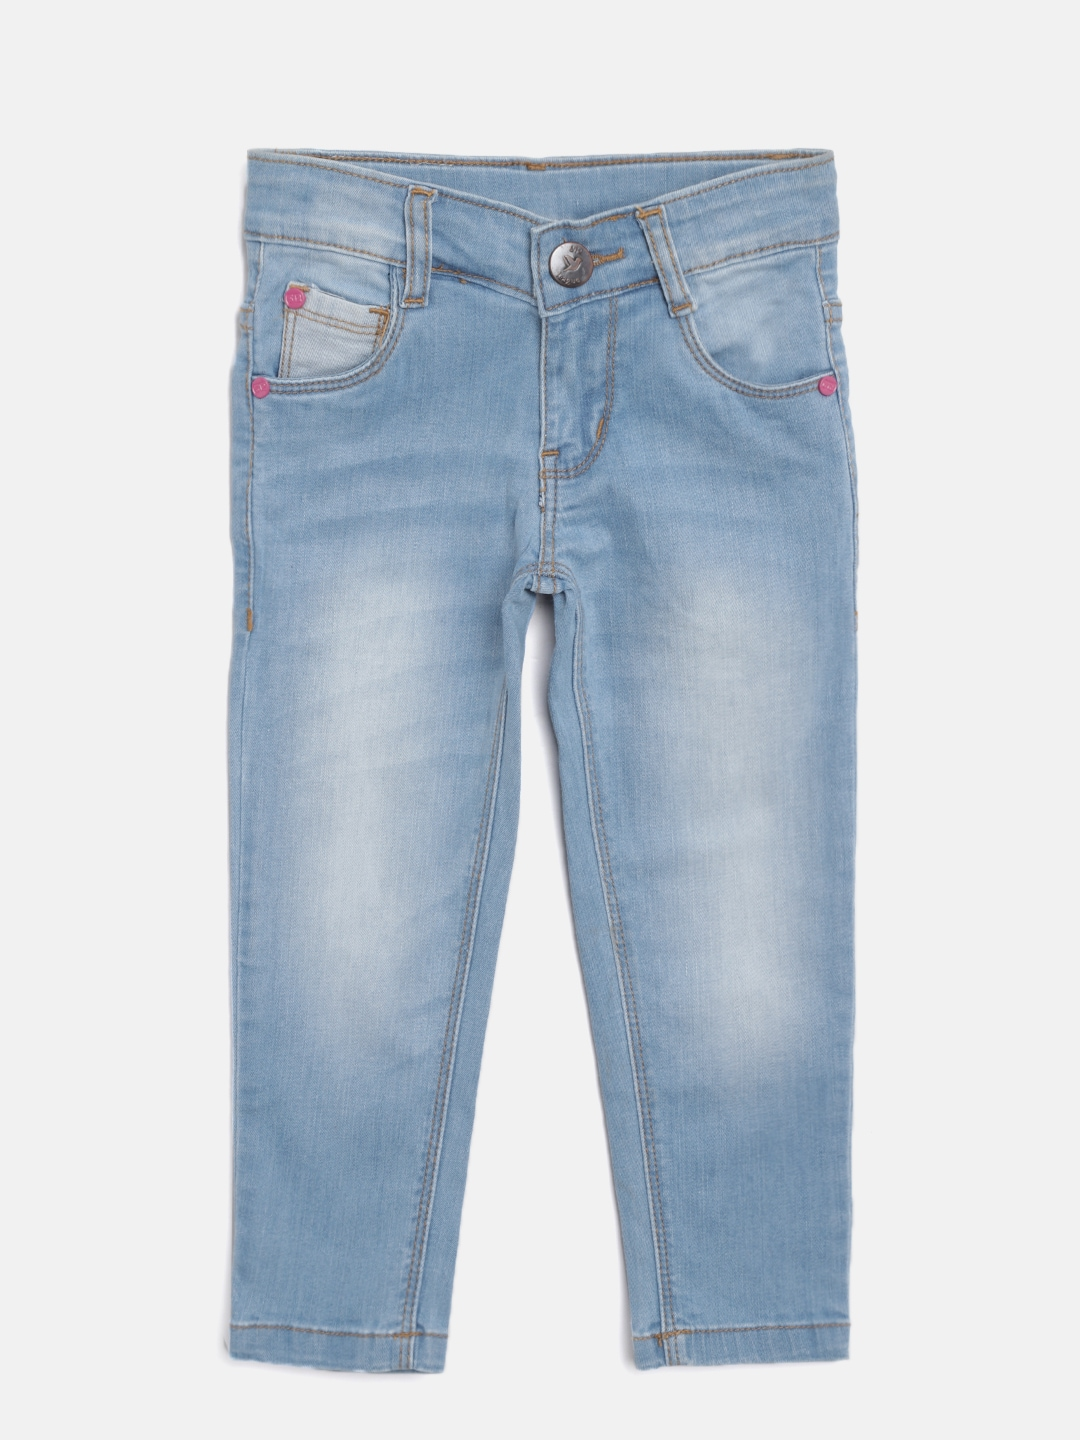 db0bf08d5042 612 League - Exclusive 612 League Online Store in India at Myntra